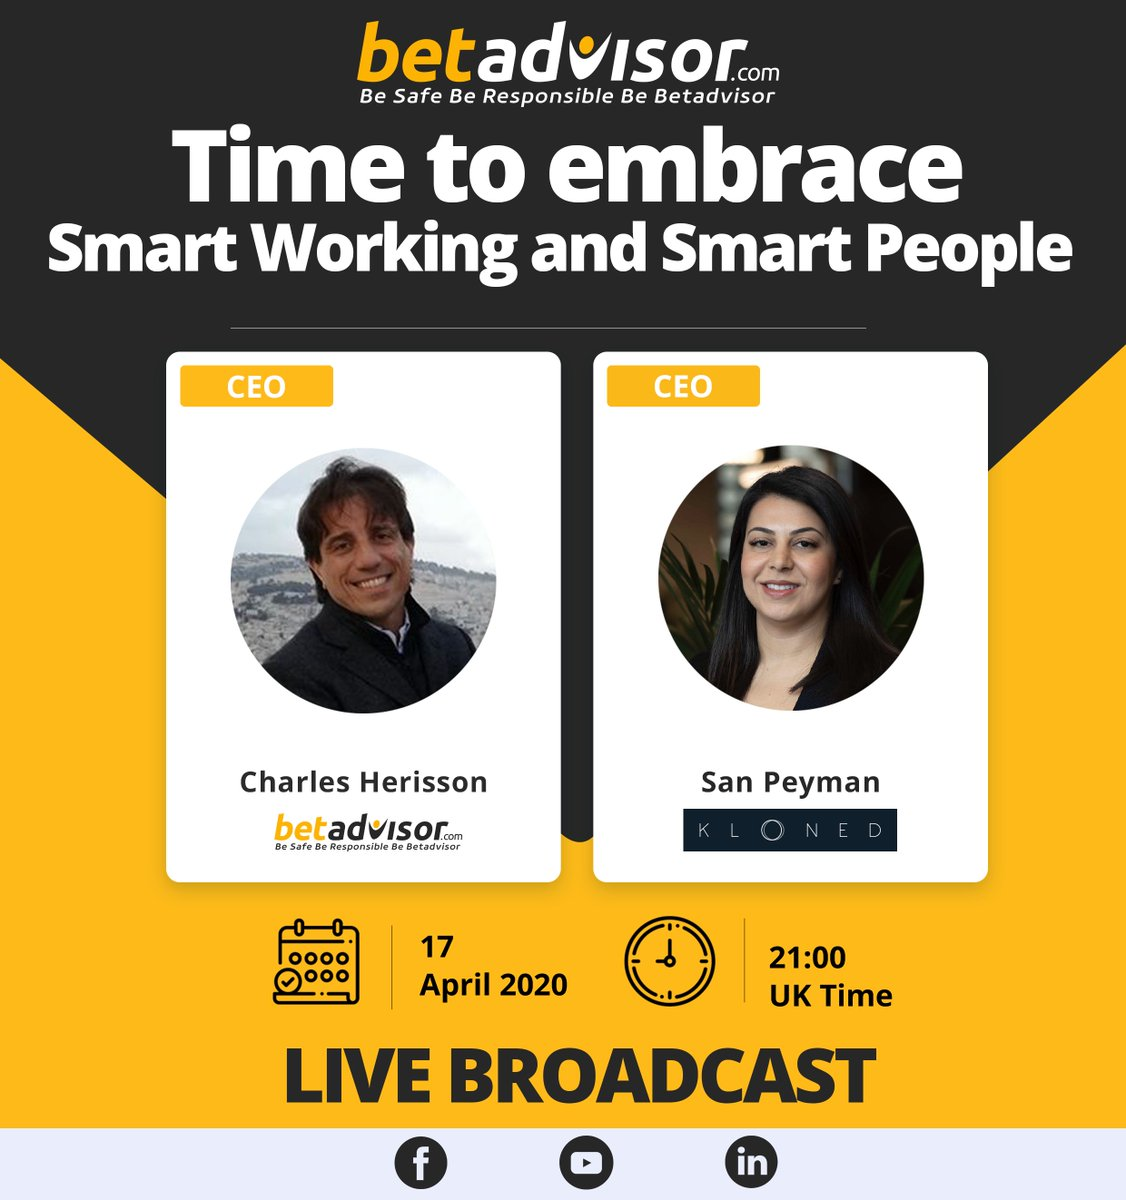 On April 17th at 21.00 PM UK Time, We will have a #live conversation on my #Linkedin #Facebook #Youtube with San Peyman   You can suggest new questions on comments.  Time to embrace Smart Working and Smart People.  What is Smart Working for you?   https://t.co/UKKcqGpzkM https://t.co/uIe2R0kip0